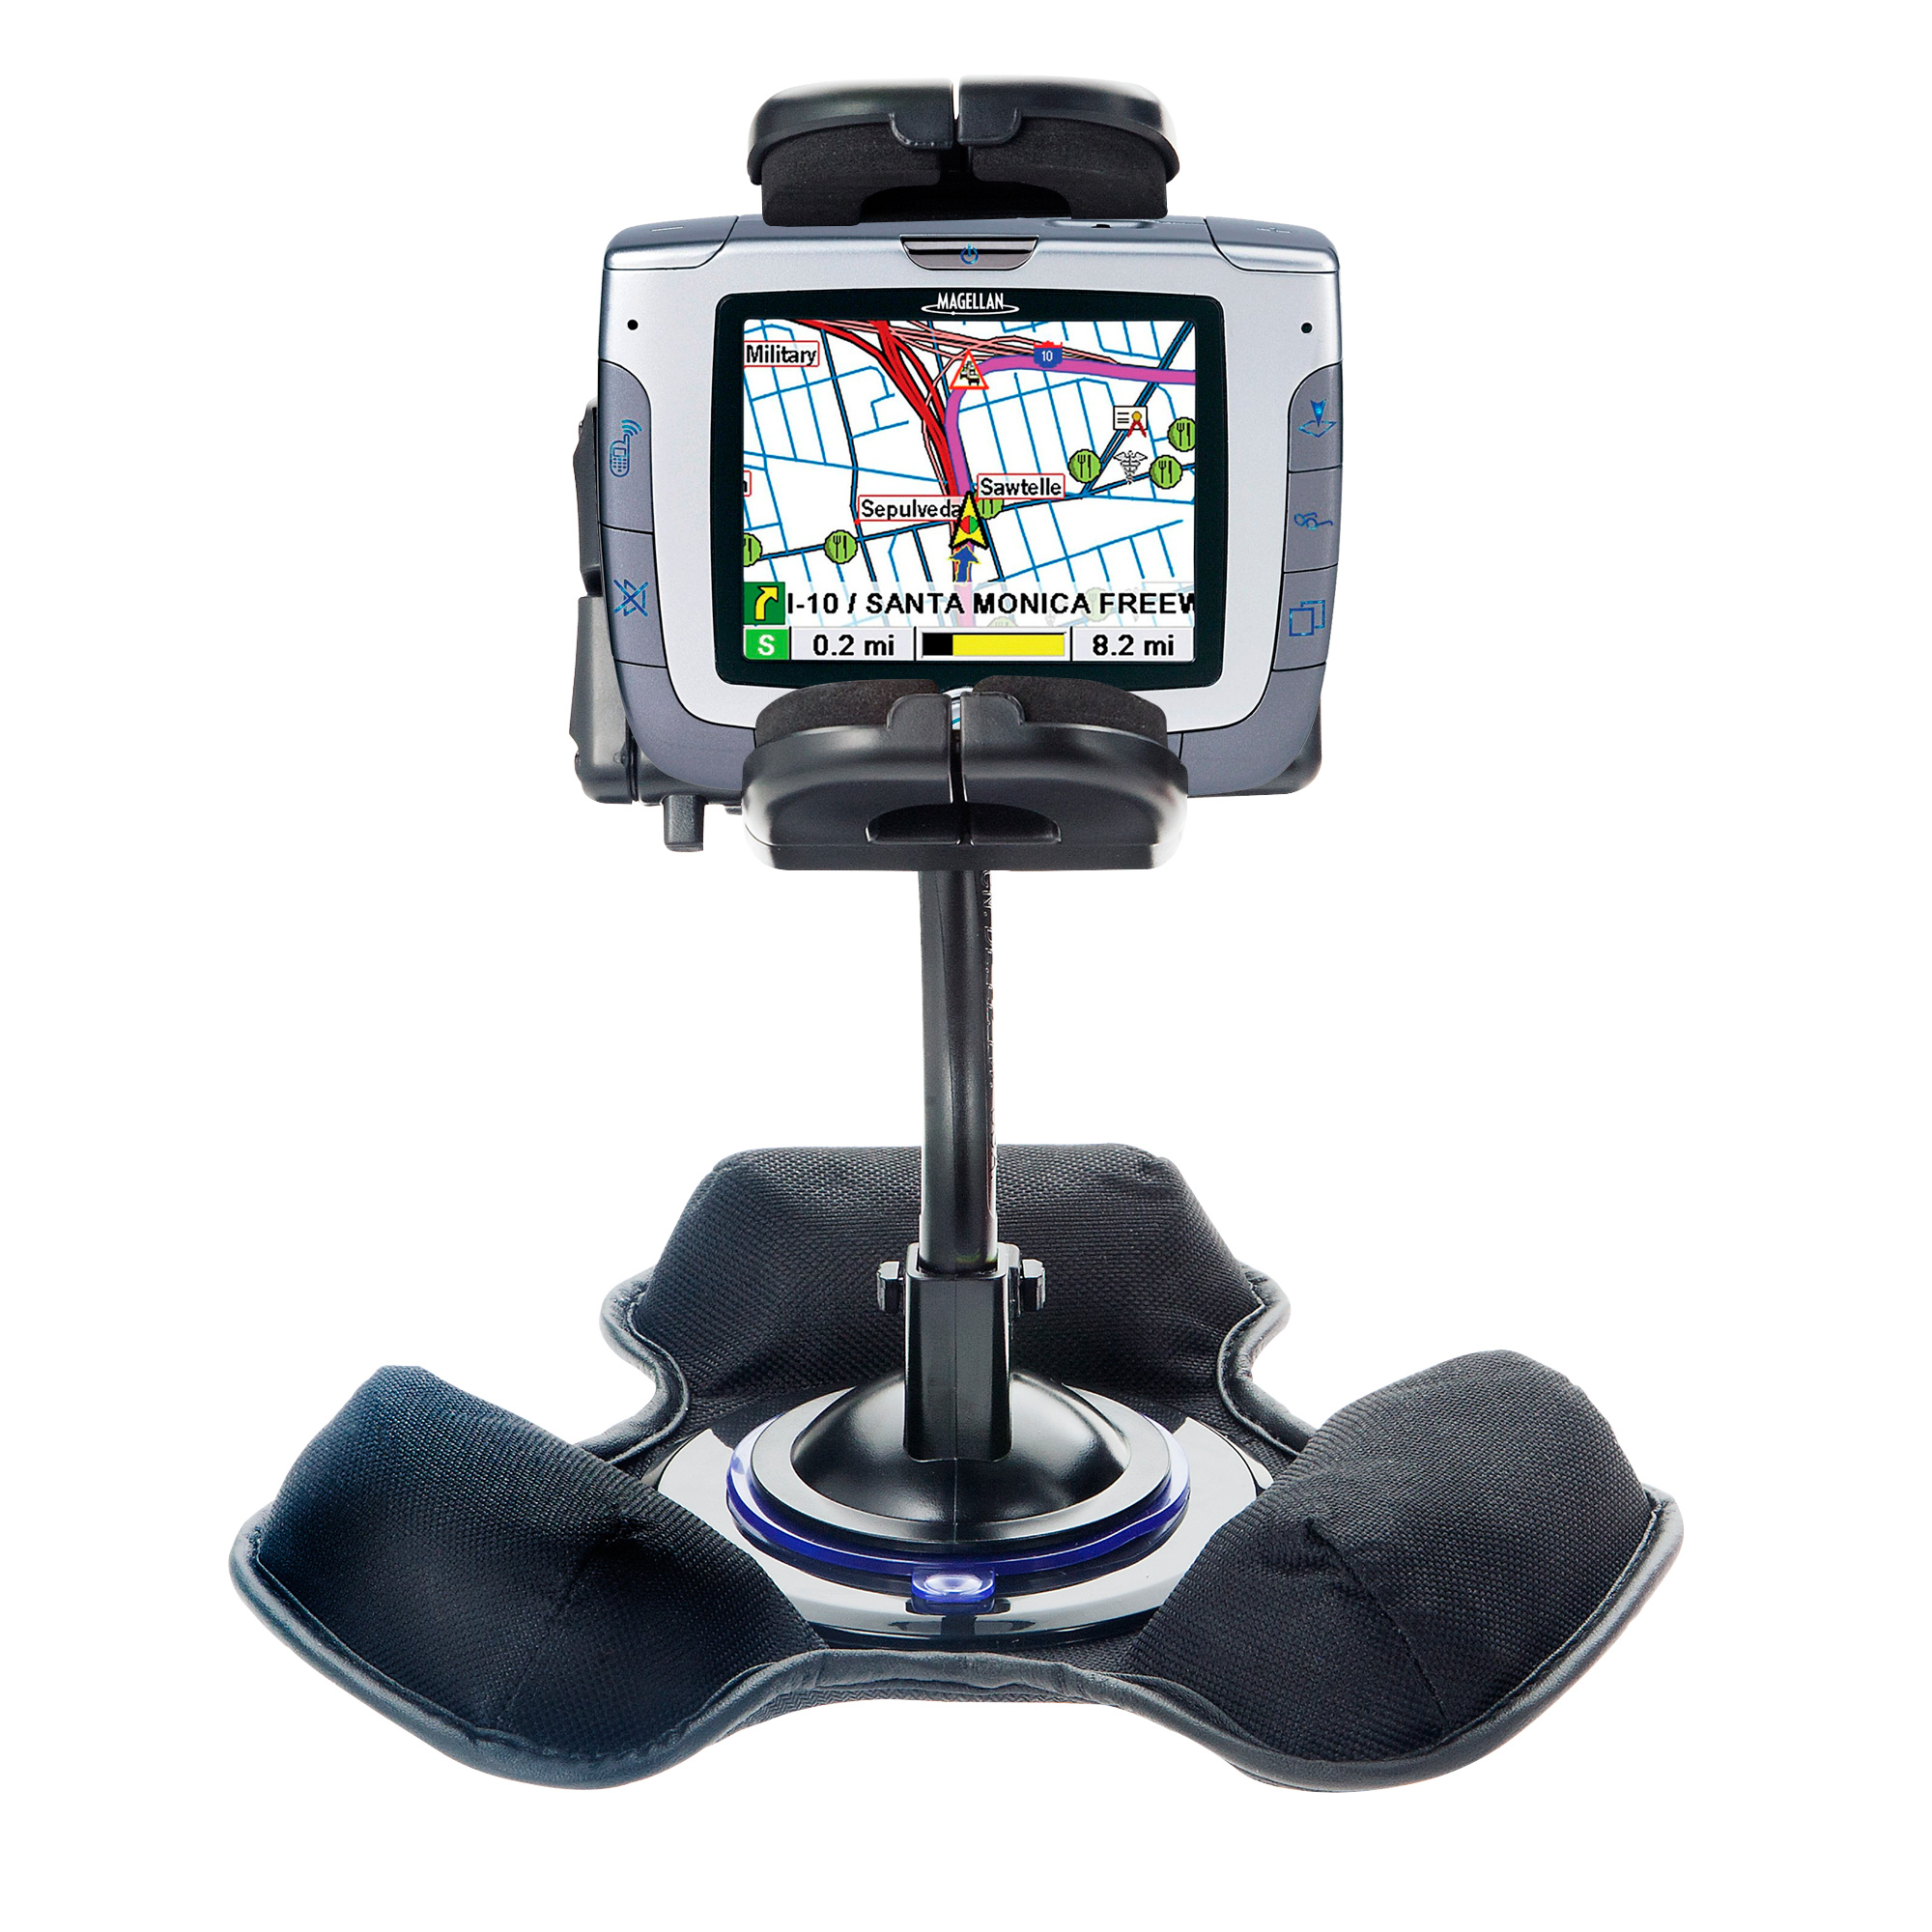 Dash and Windshield Holder compatible with the Magellan Roadmate 3000T